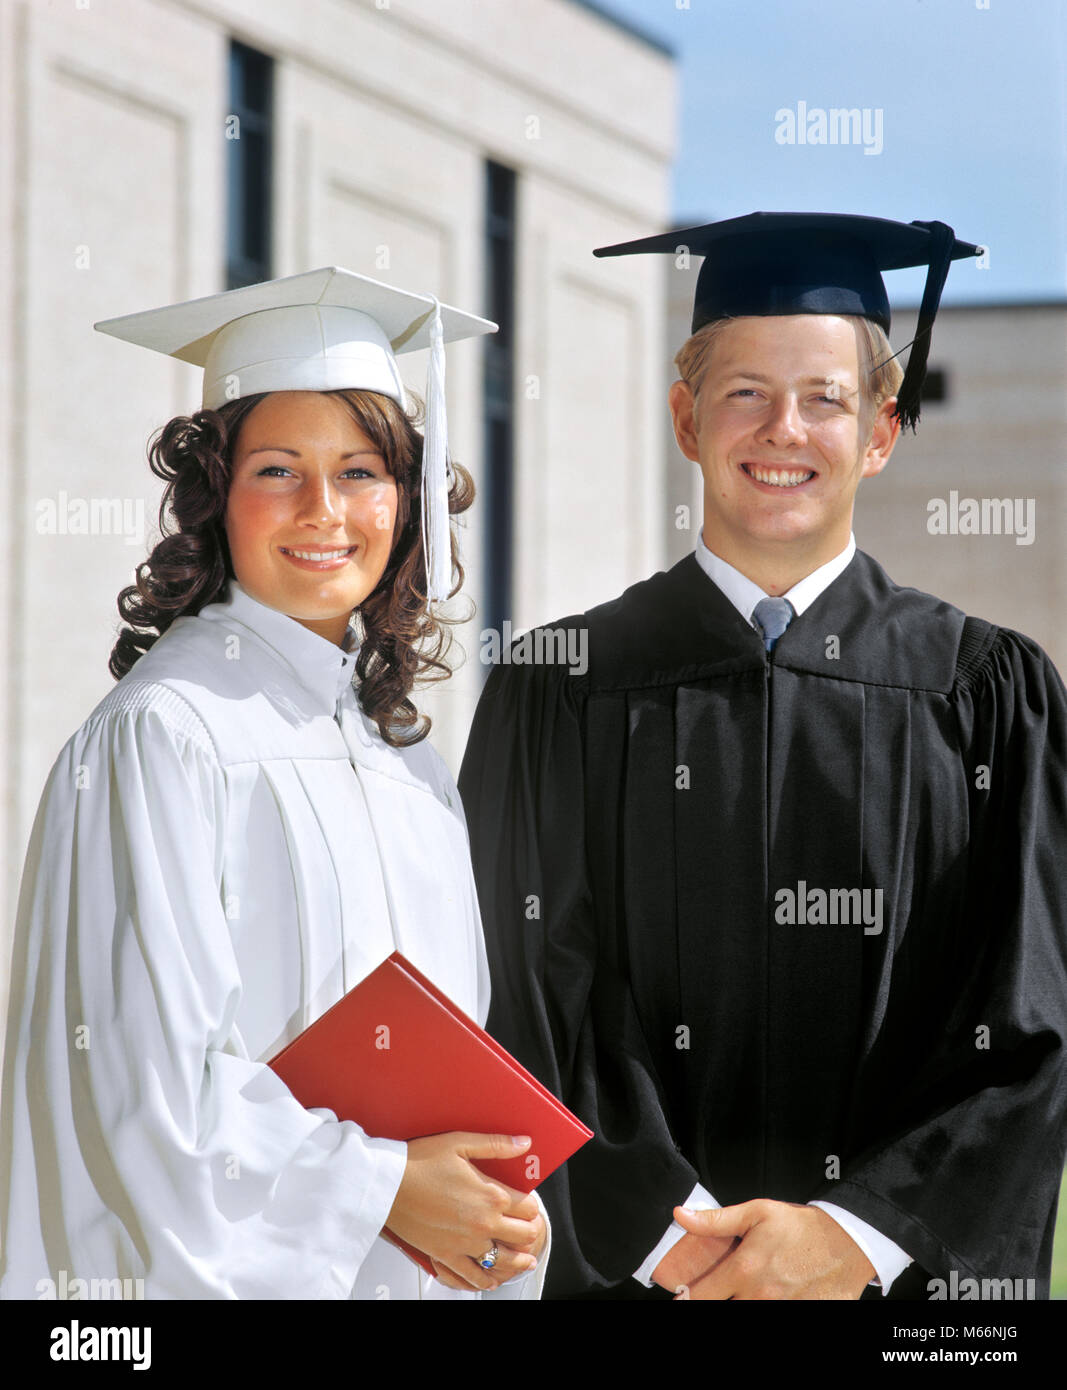 1970s PORTRAIT STUDENT COUPLE IN GRADUATION ROBES LOOKING AT CAMERA - ks9467 HAR001 HARS CELEBRATION FEMALES COPY - Stock Image